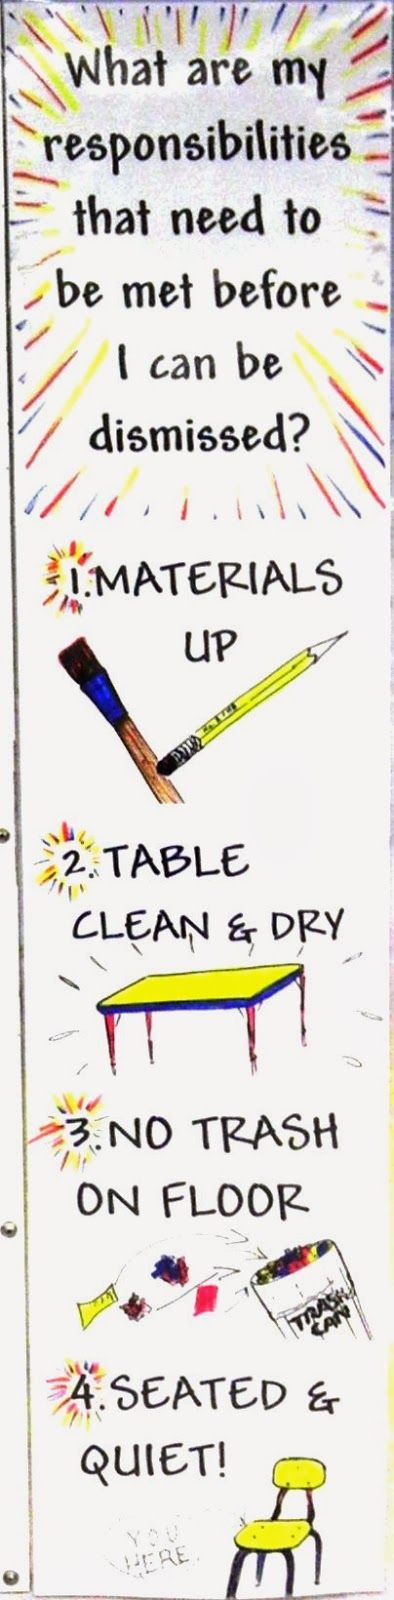 "Post on art bins at tables, switch one to ""Do my table job"" art room classroom clean up management signage"